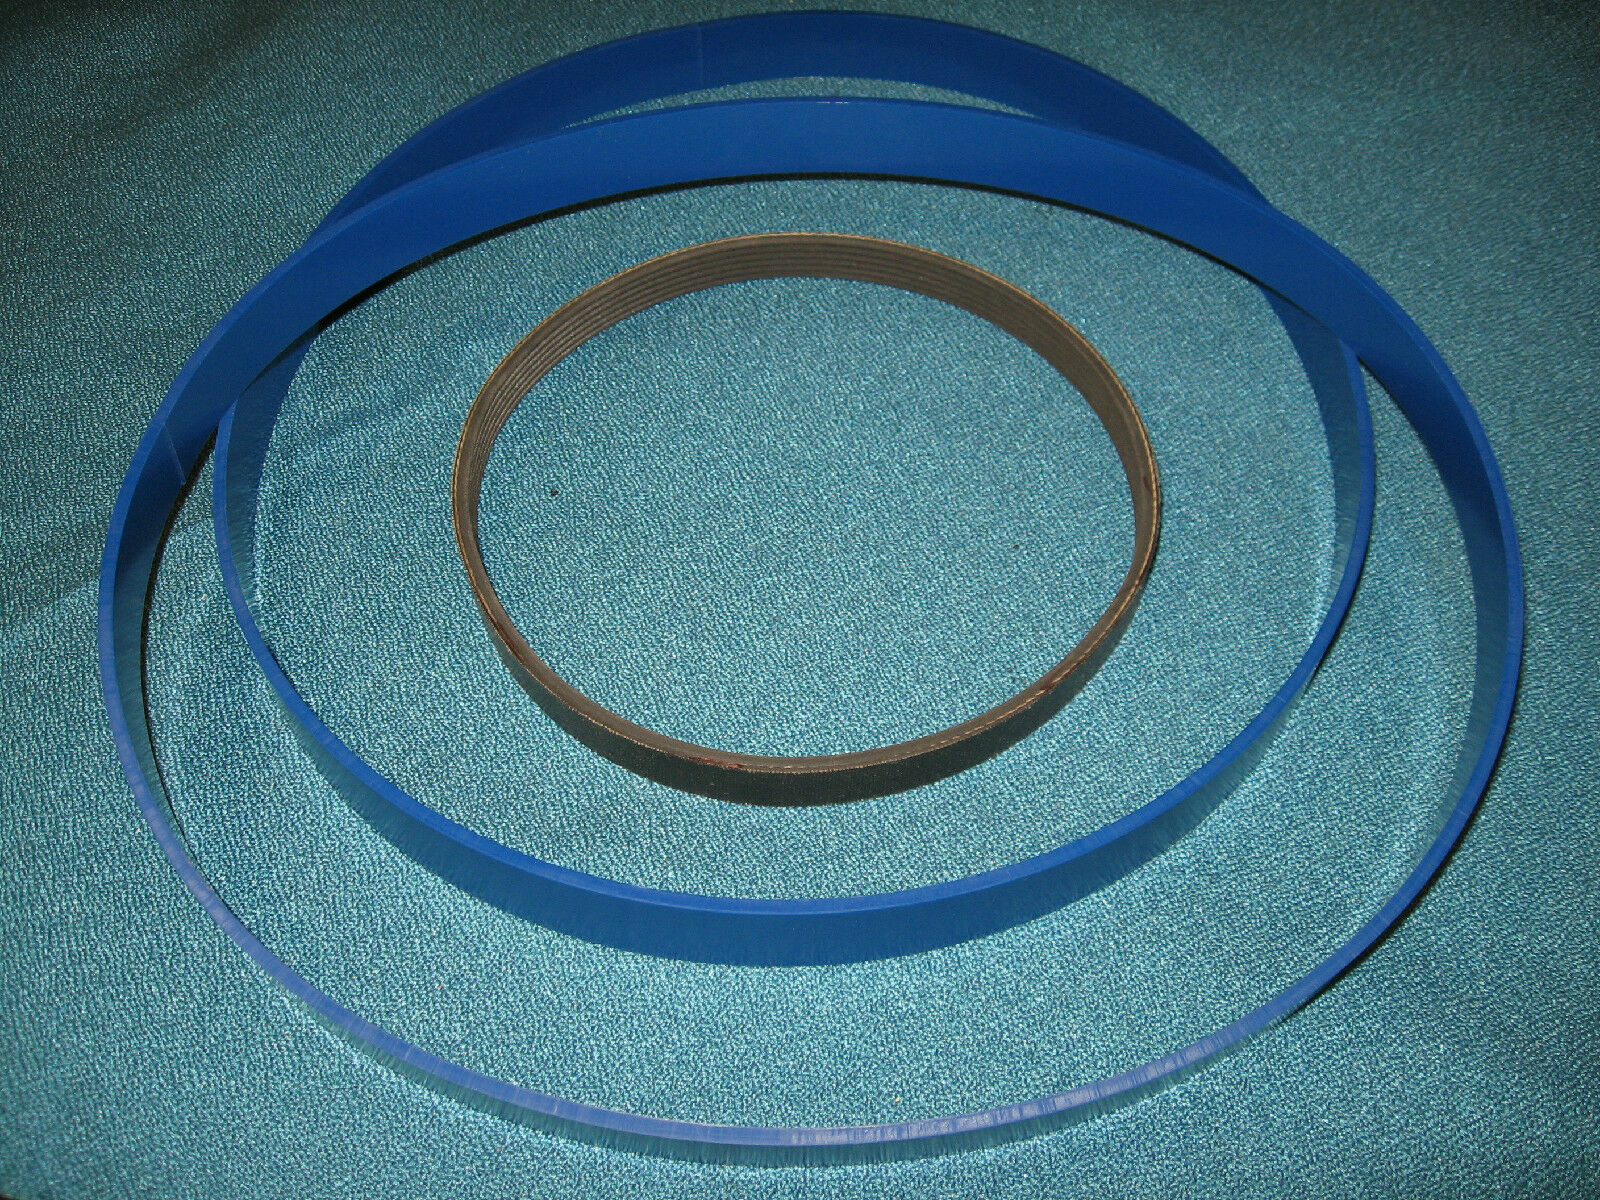 Blau MAX URETHANE BAND SAW TIRES AND DRIVE BELT FOR CRAFTSMAN 113247210 BAND SAW